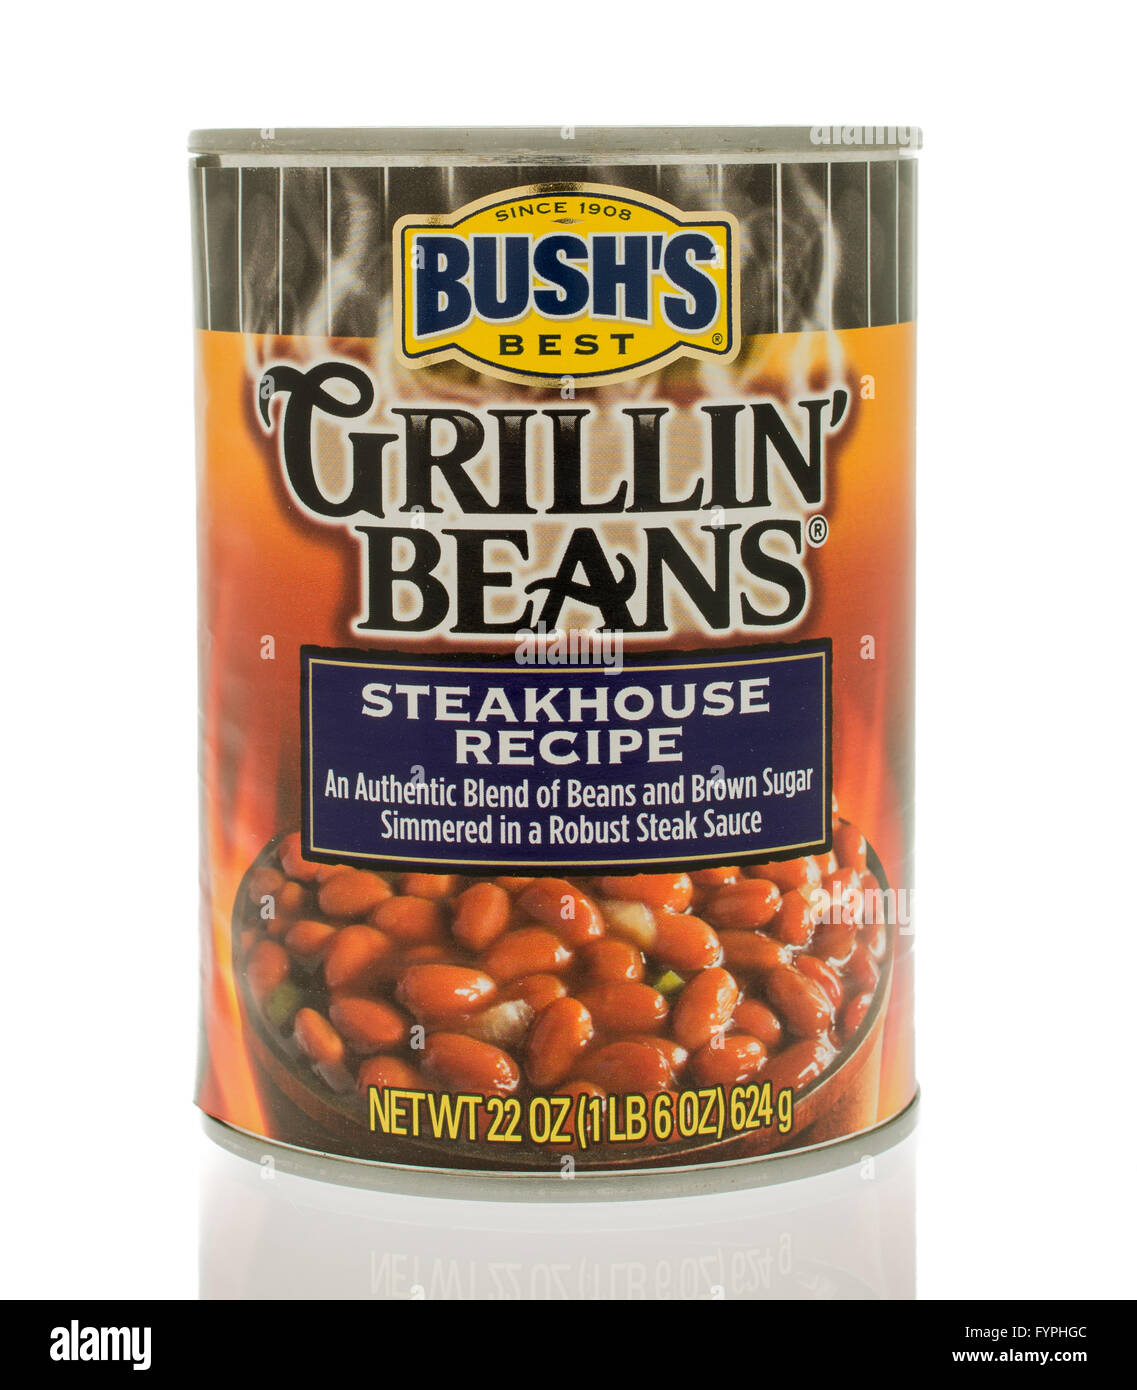 Winneconne, WI - 18 Nov 2015:  A can of Bush's grillin' beans in steakhouse recipe flavor. - Stock Image